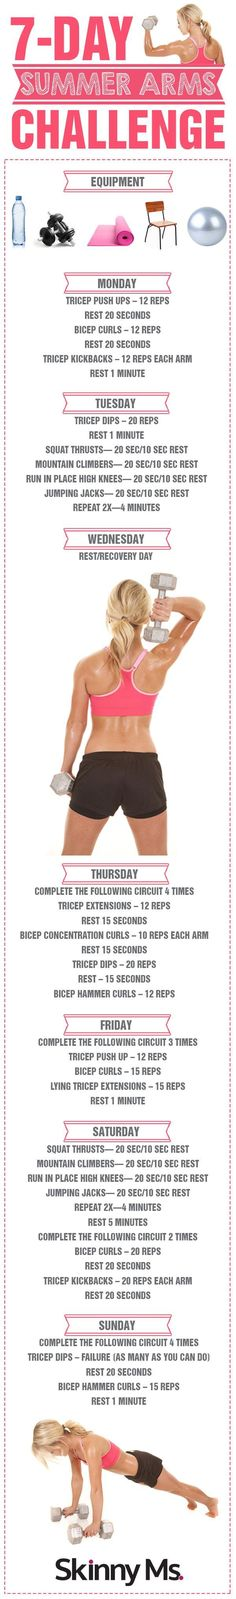 7 Day Summer Arms Challenge - there is no better time to get those beautifully toned and defined arms! #summerarmschallenge #workoutchallenge #fitnesschallenge